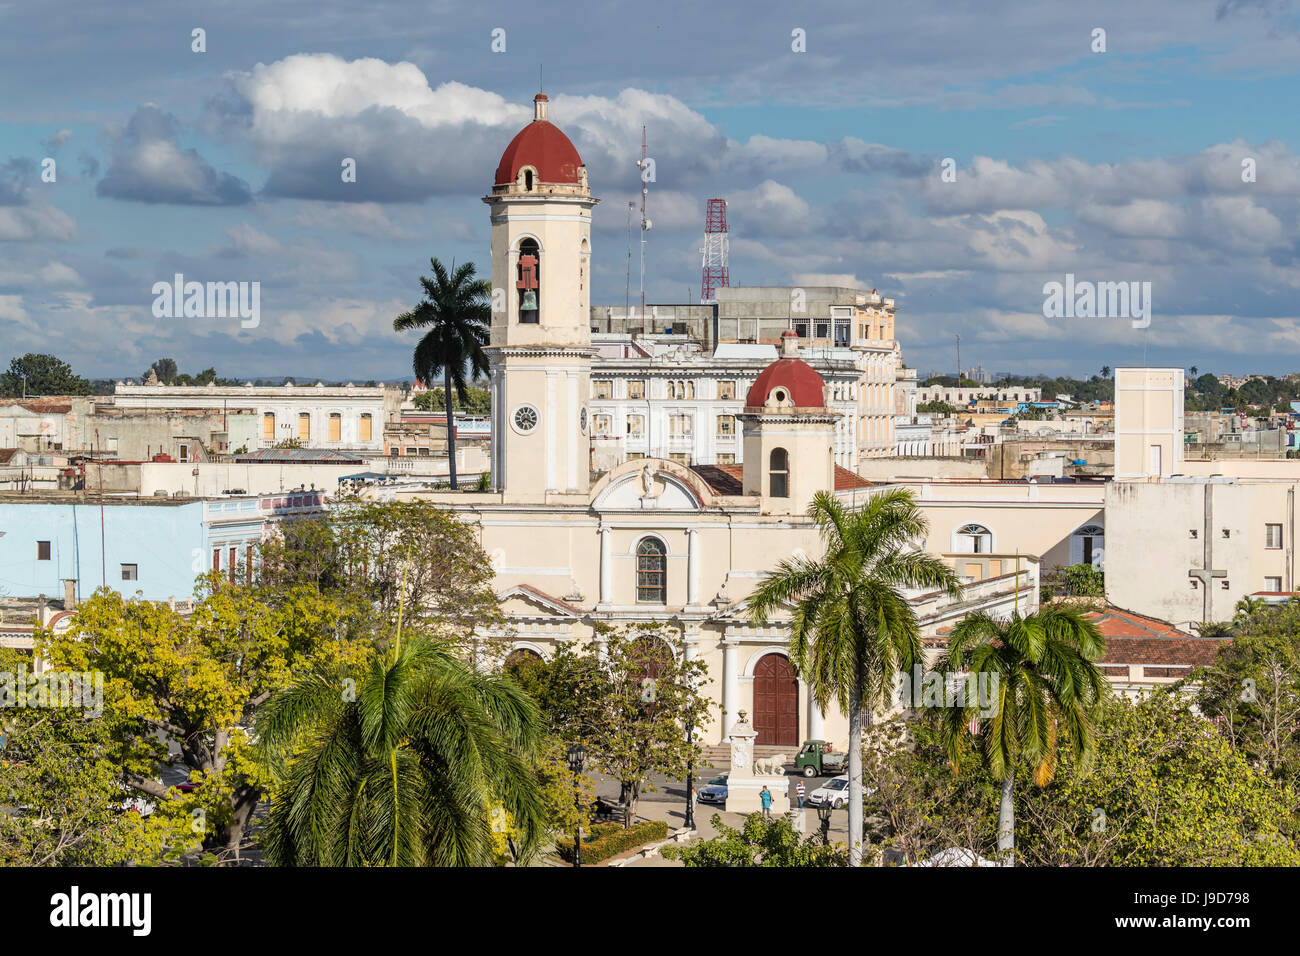 The Catedral de la Purisima Concepcion in Plaza Jose Marti, Cienfuegos, UNESCO World Heritage Site, Cuba, West Indies, - Stock Image